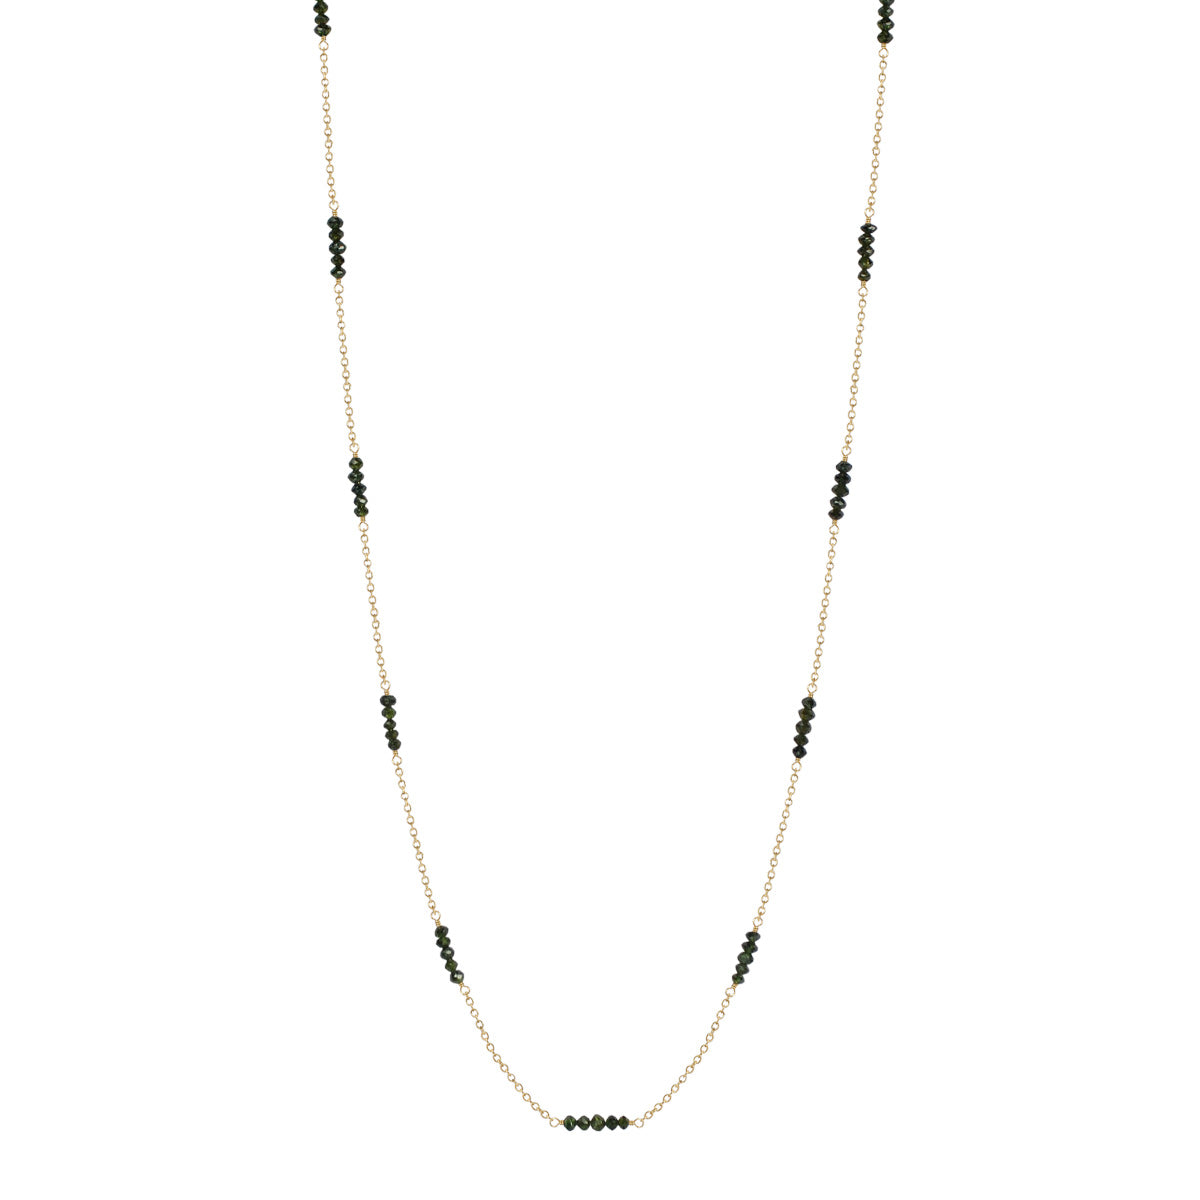 18K Gold Green Diamond Necklace